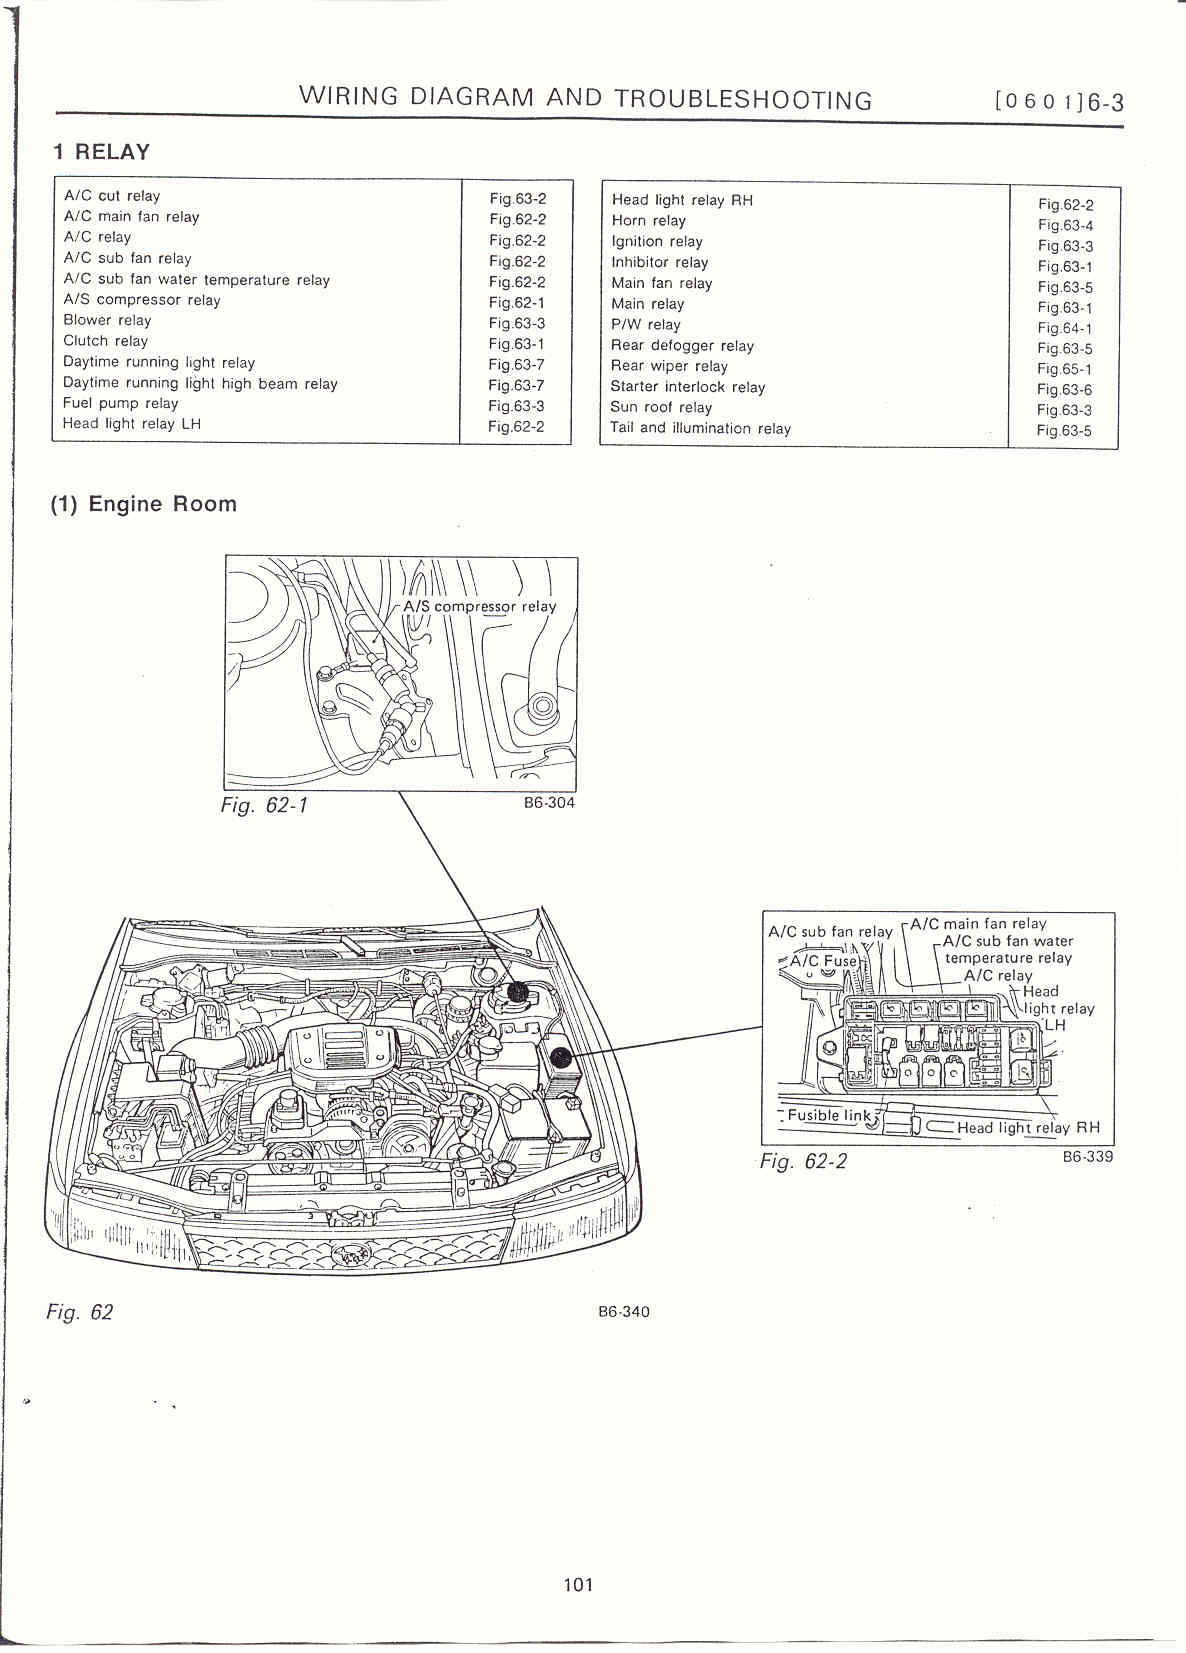 Subaru Forester Wiring Harness Diagram Surrealmirage Subaru Legacy Swap Electrical Info Amp Notes